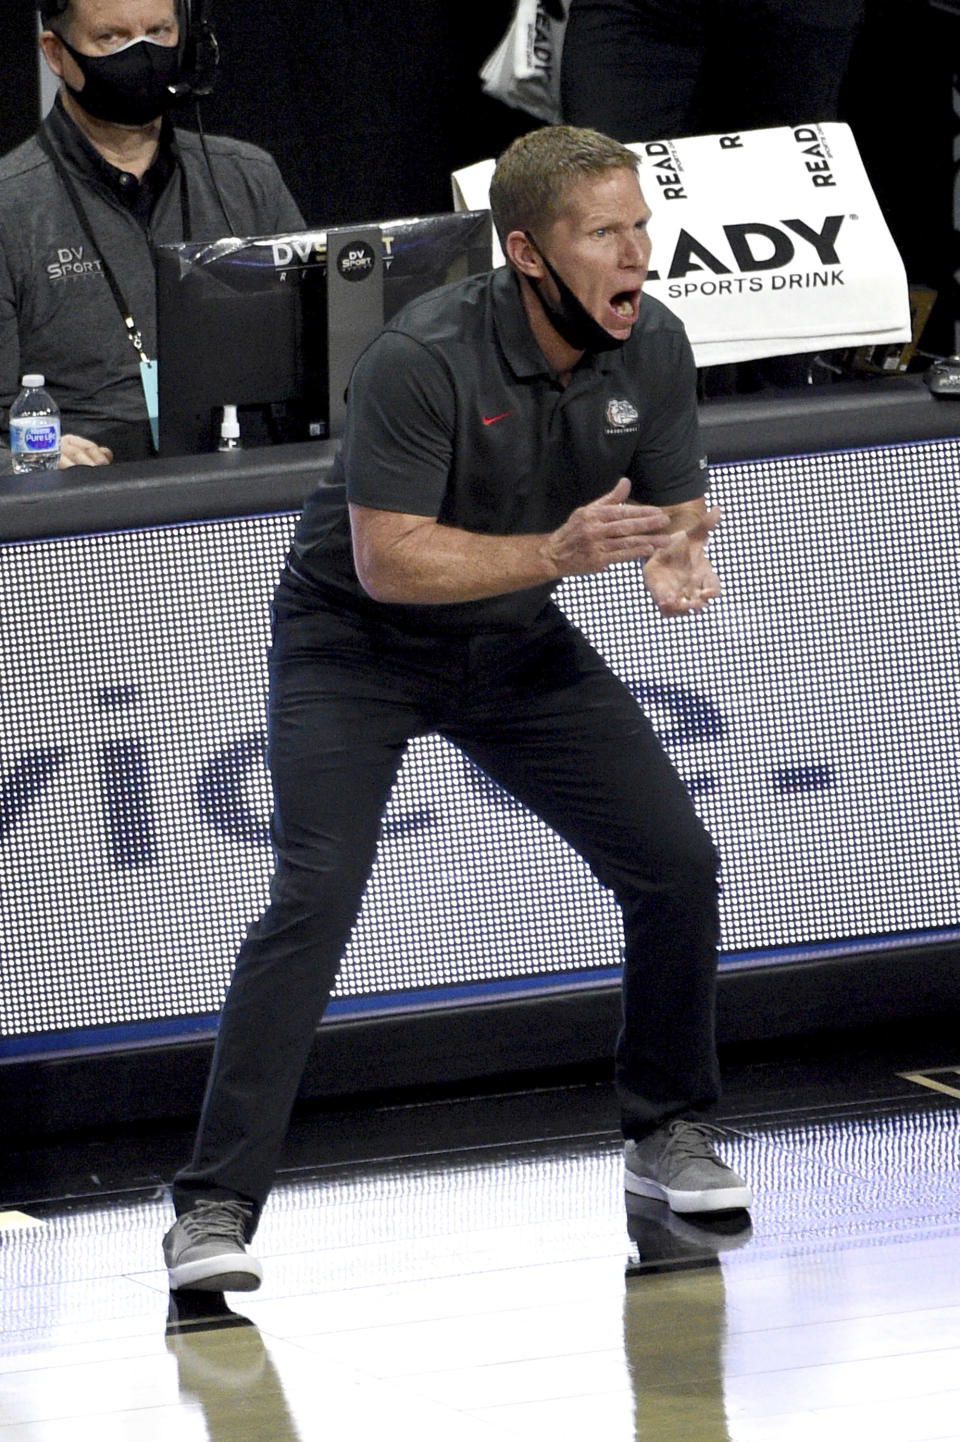 Gonzaga head coach Mark Few calls to his team during the first half of an NCAA semifinal college basketball game against Saint Mary's at the West Coast Conference tournament Monday, March 8, 2021, in Las Vegas. (AP Photo/David Becker)